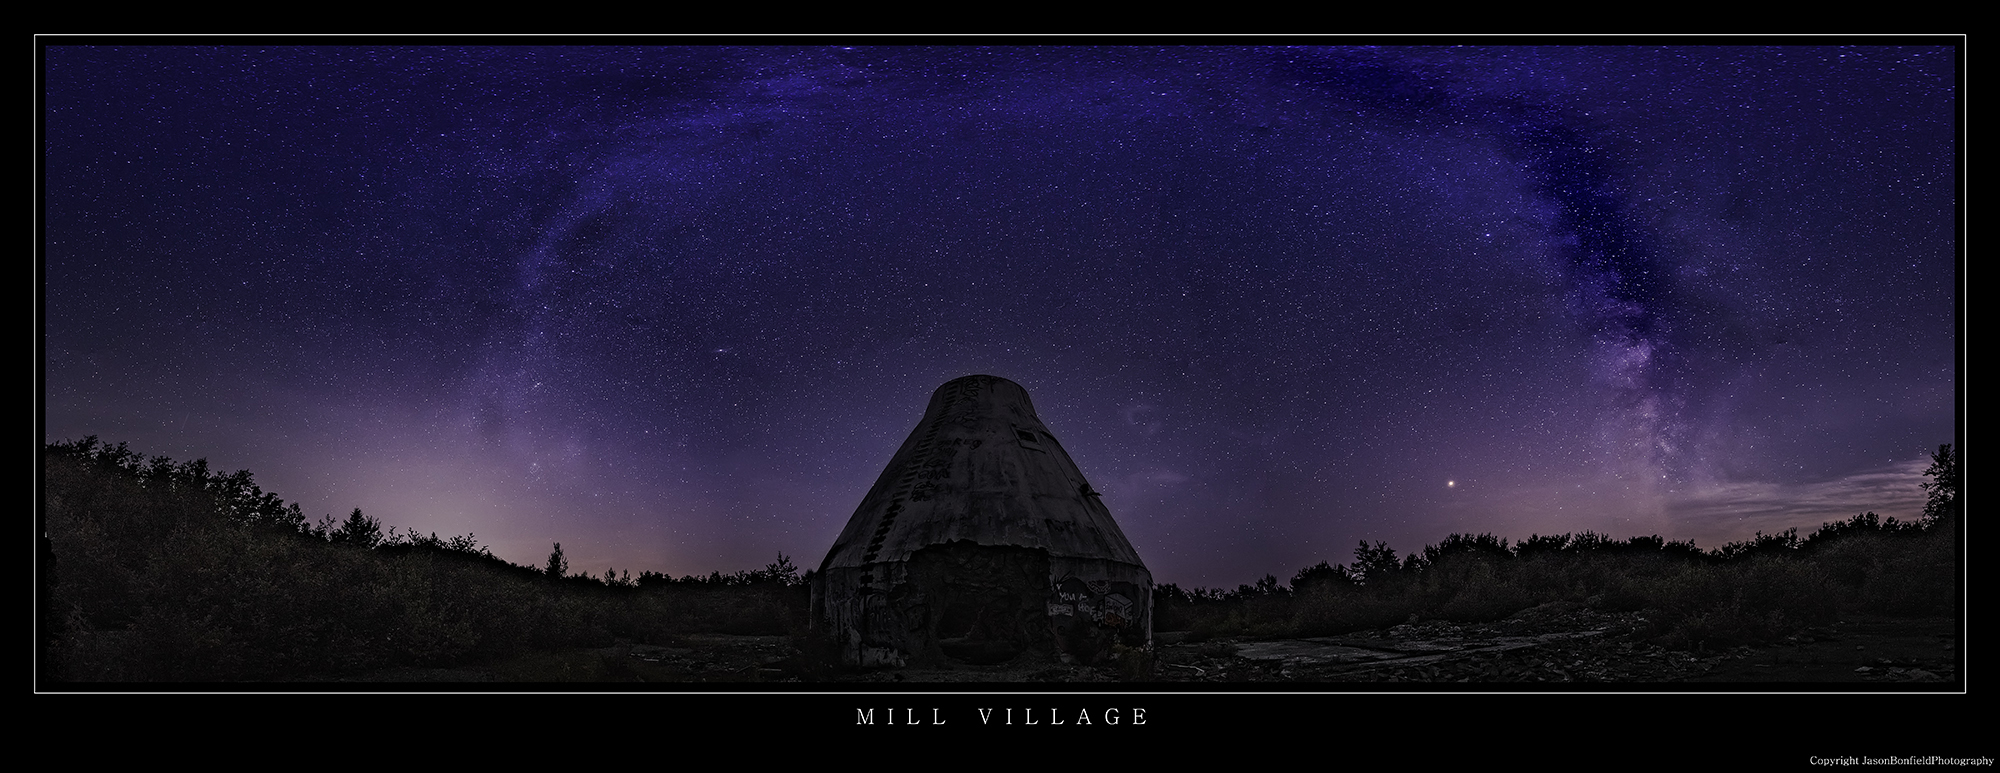 Panoramic night time landscape picture of  the abondoned Mill Village Satellite Earth Station in Nova Scotia with the Milky Way Galaxy visable in the sky